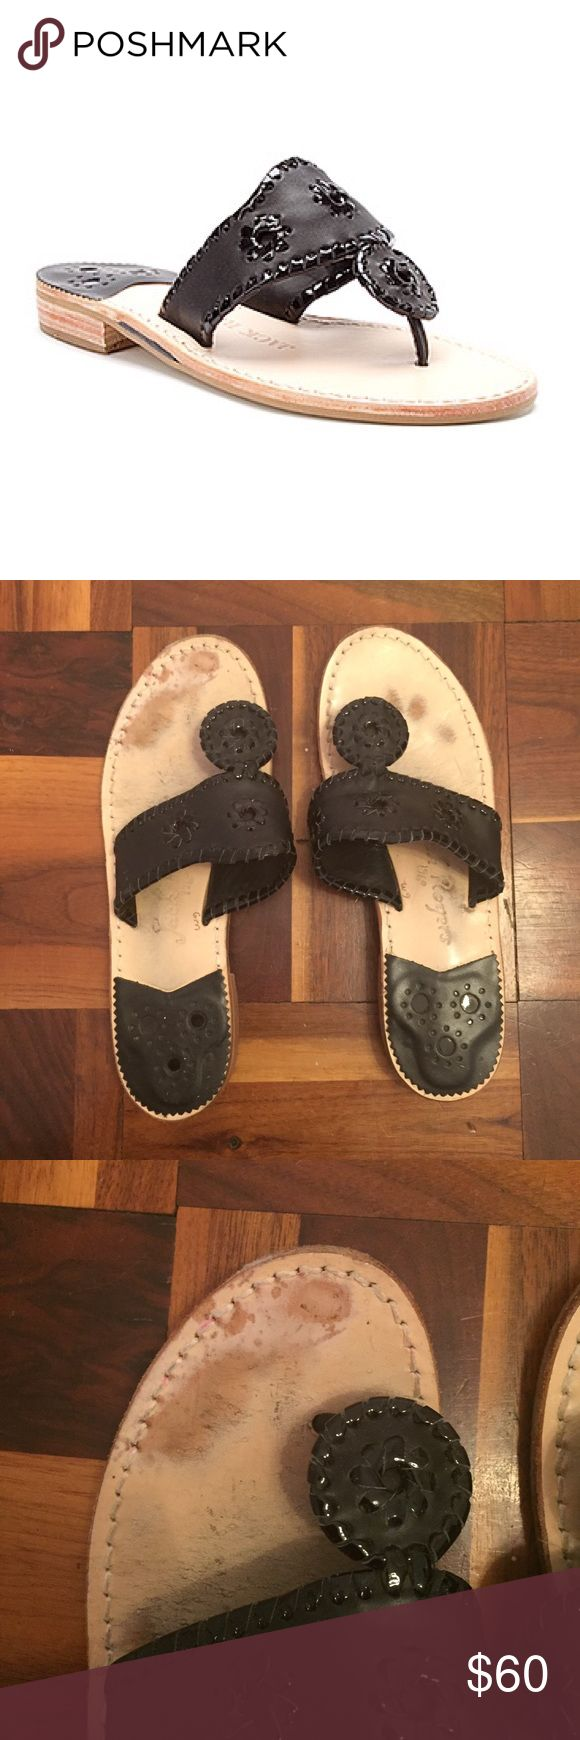 Jack Rogers Black Palm Beach Sandals Sandals only worn a few times. They have a red stain near the front that is hardly noticeable when worn. They are in good condition! Jack Rogers Shoes Sandals